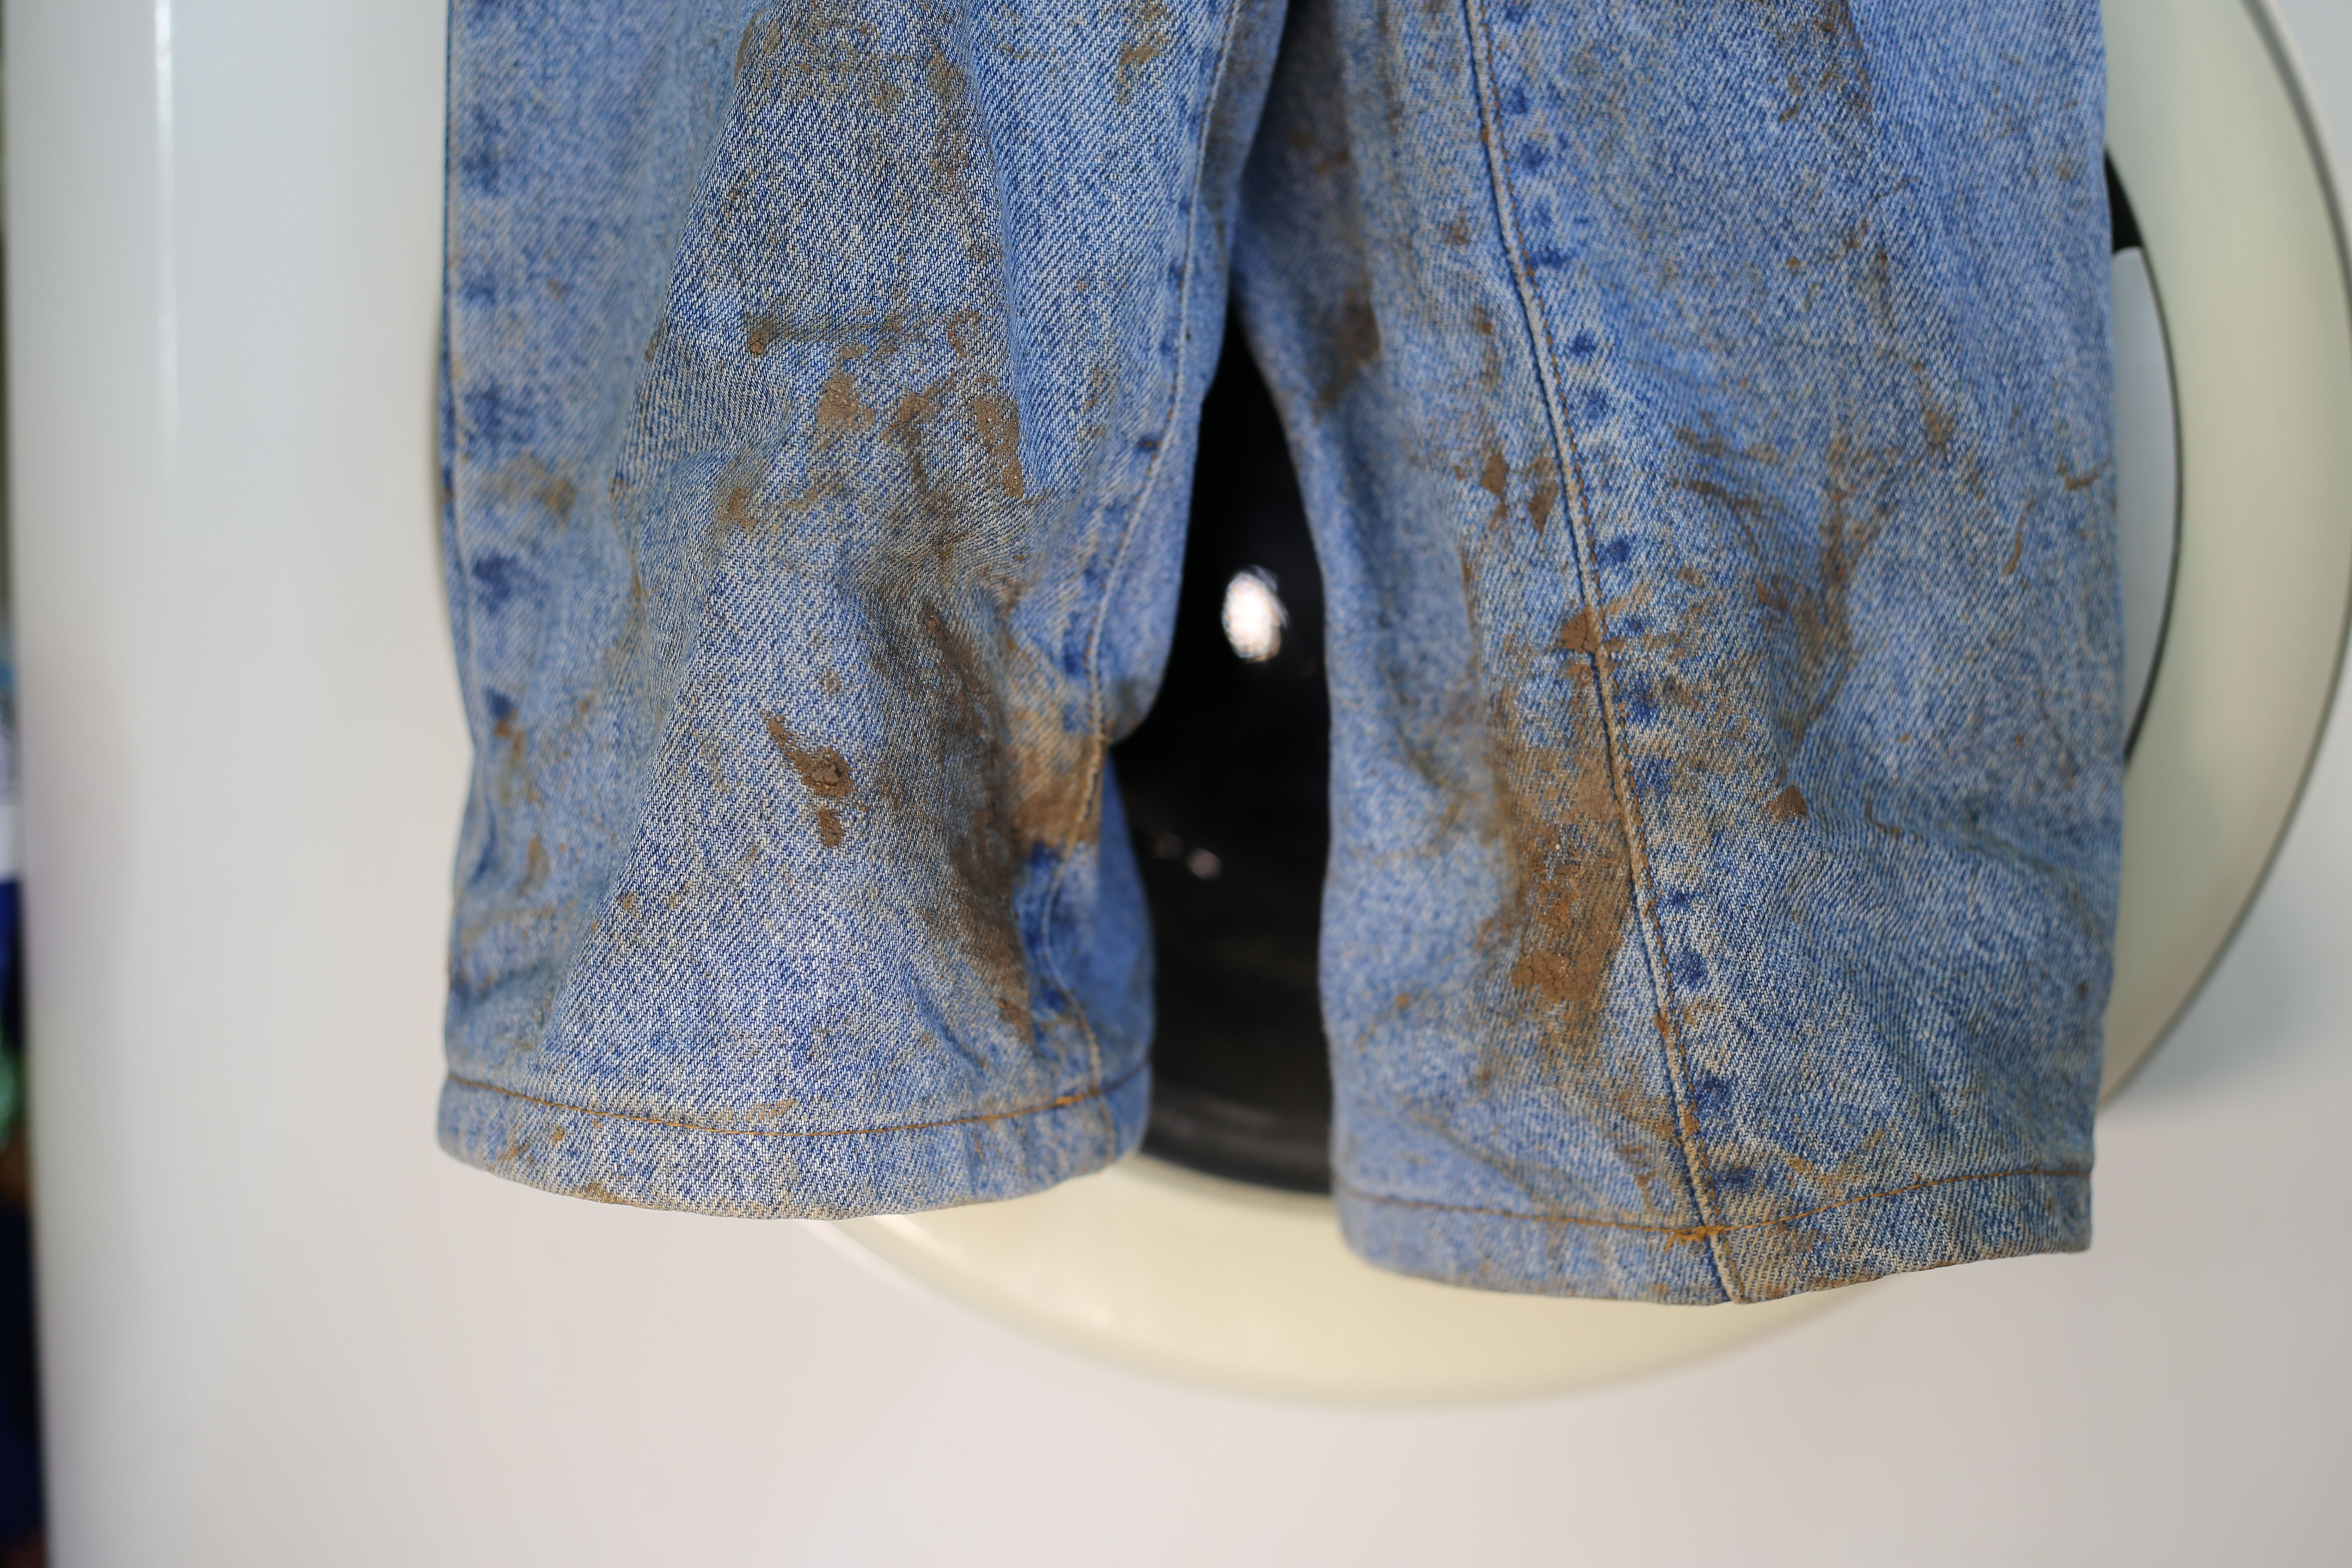 How To Remove Laundry Stains